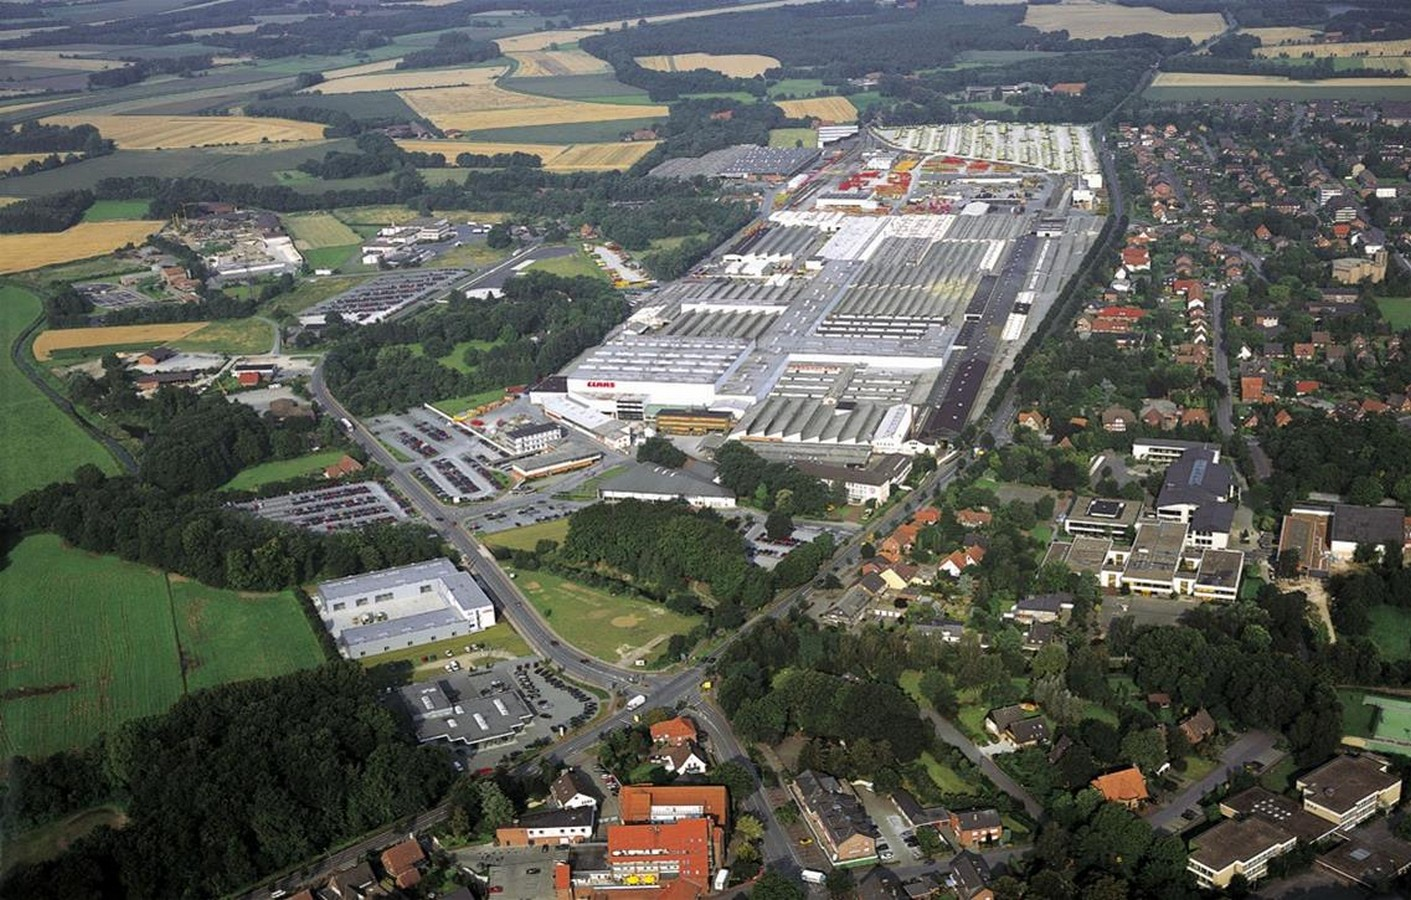 VIP visit to CLAAS in Germany - two day VIP visit. CLAAS is delighted to offer a two day VIP visit